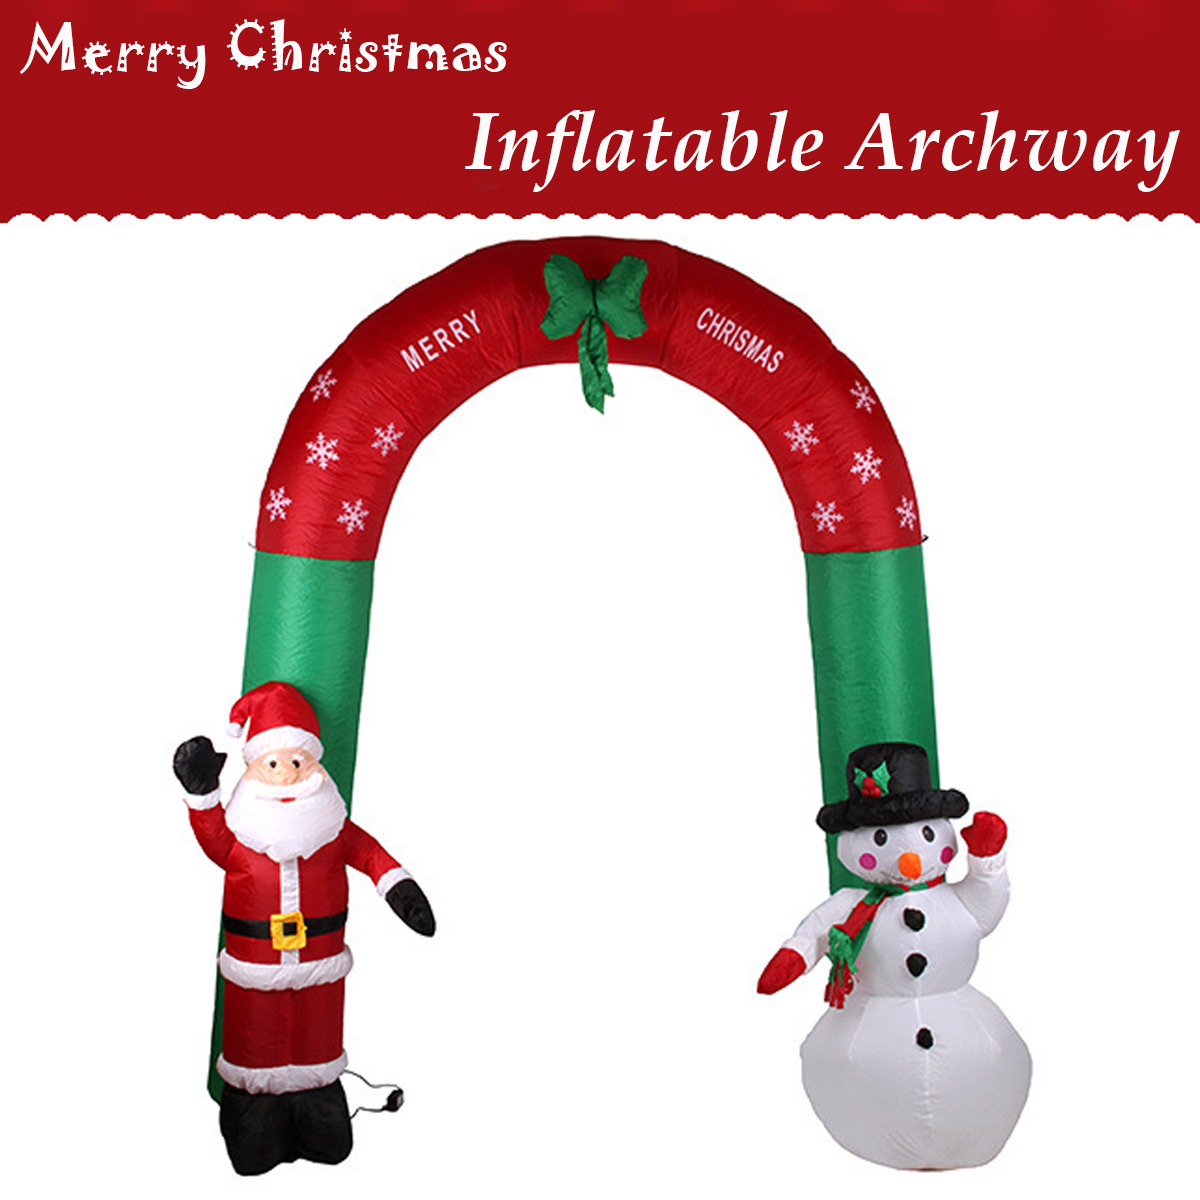 2.4M Giant Inflatable Snow Arches Toy Santa Claus Christmas Decoration For Hotels Supper Market Entertainment Venues Holiday inflatable santa claus 26ft 8m high bg a0344 toy